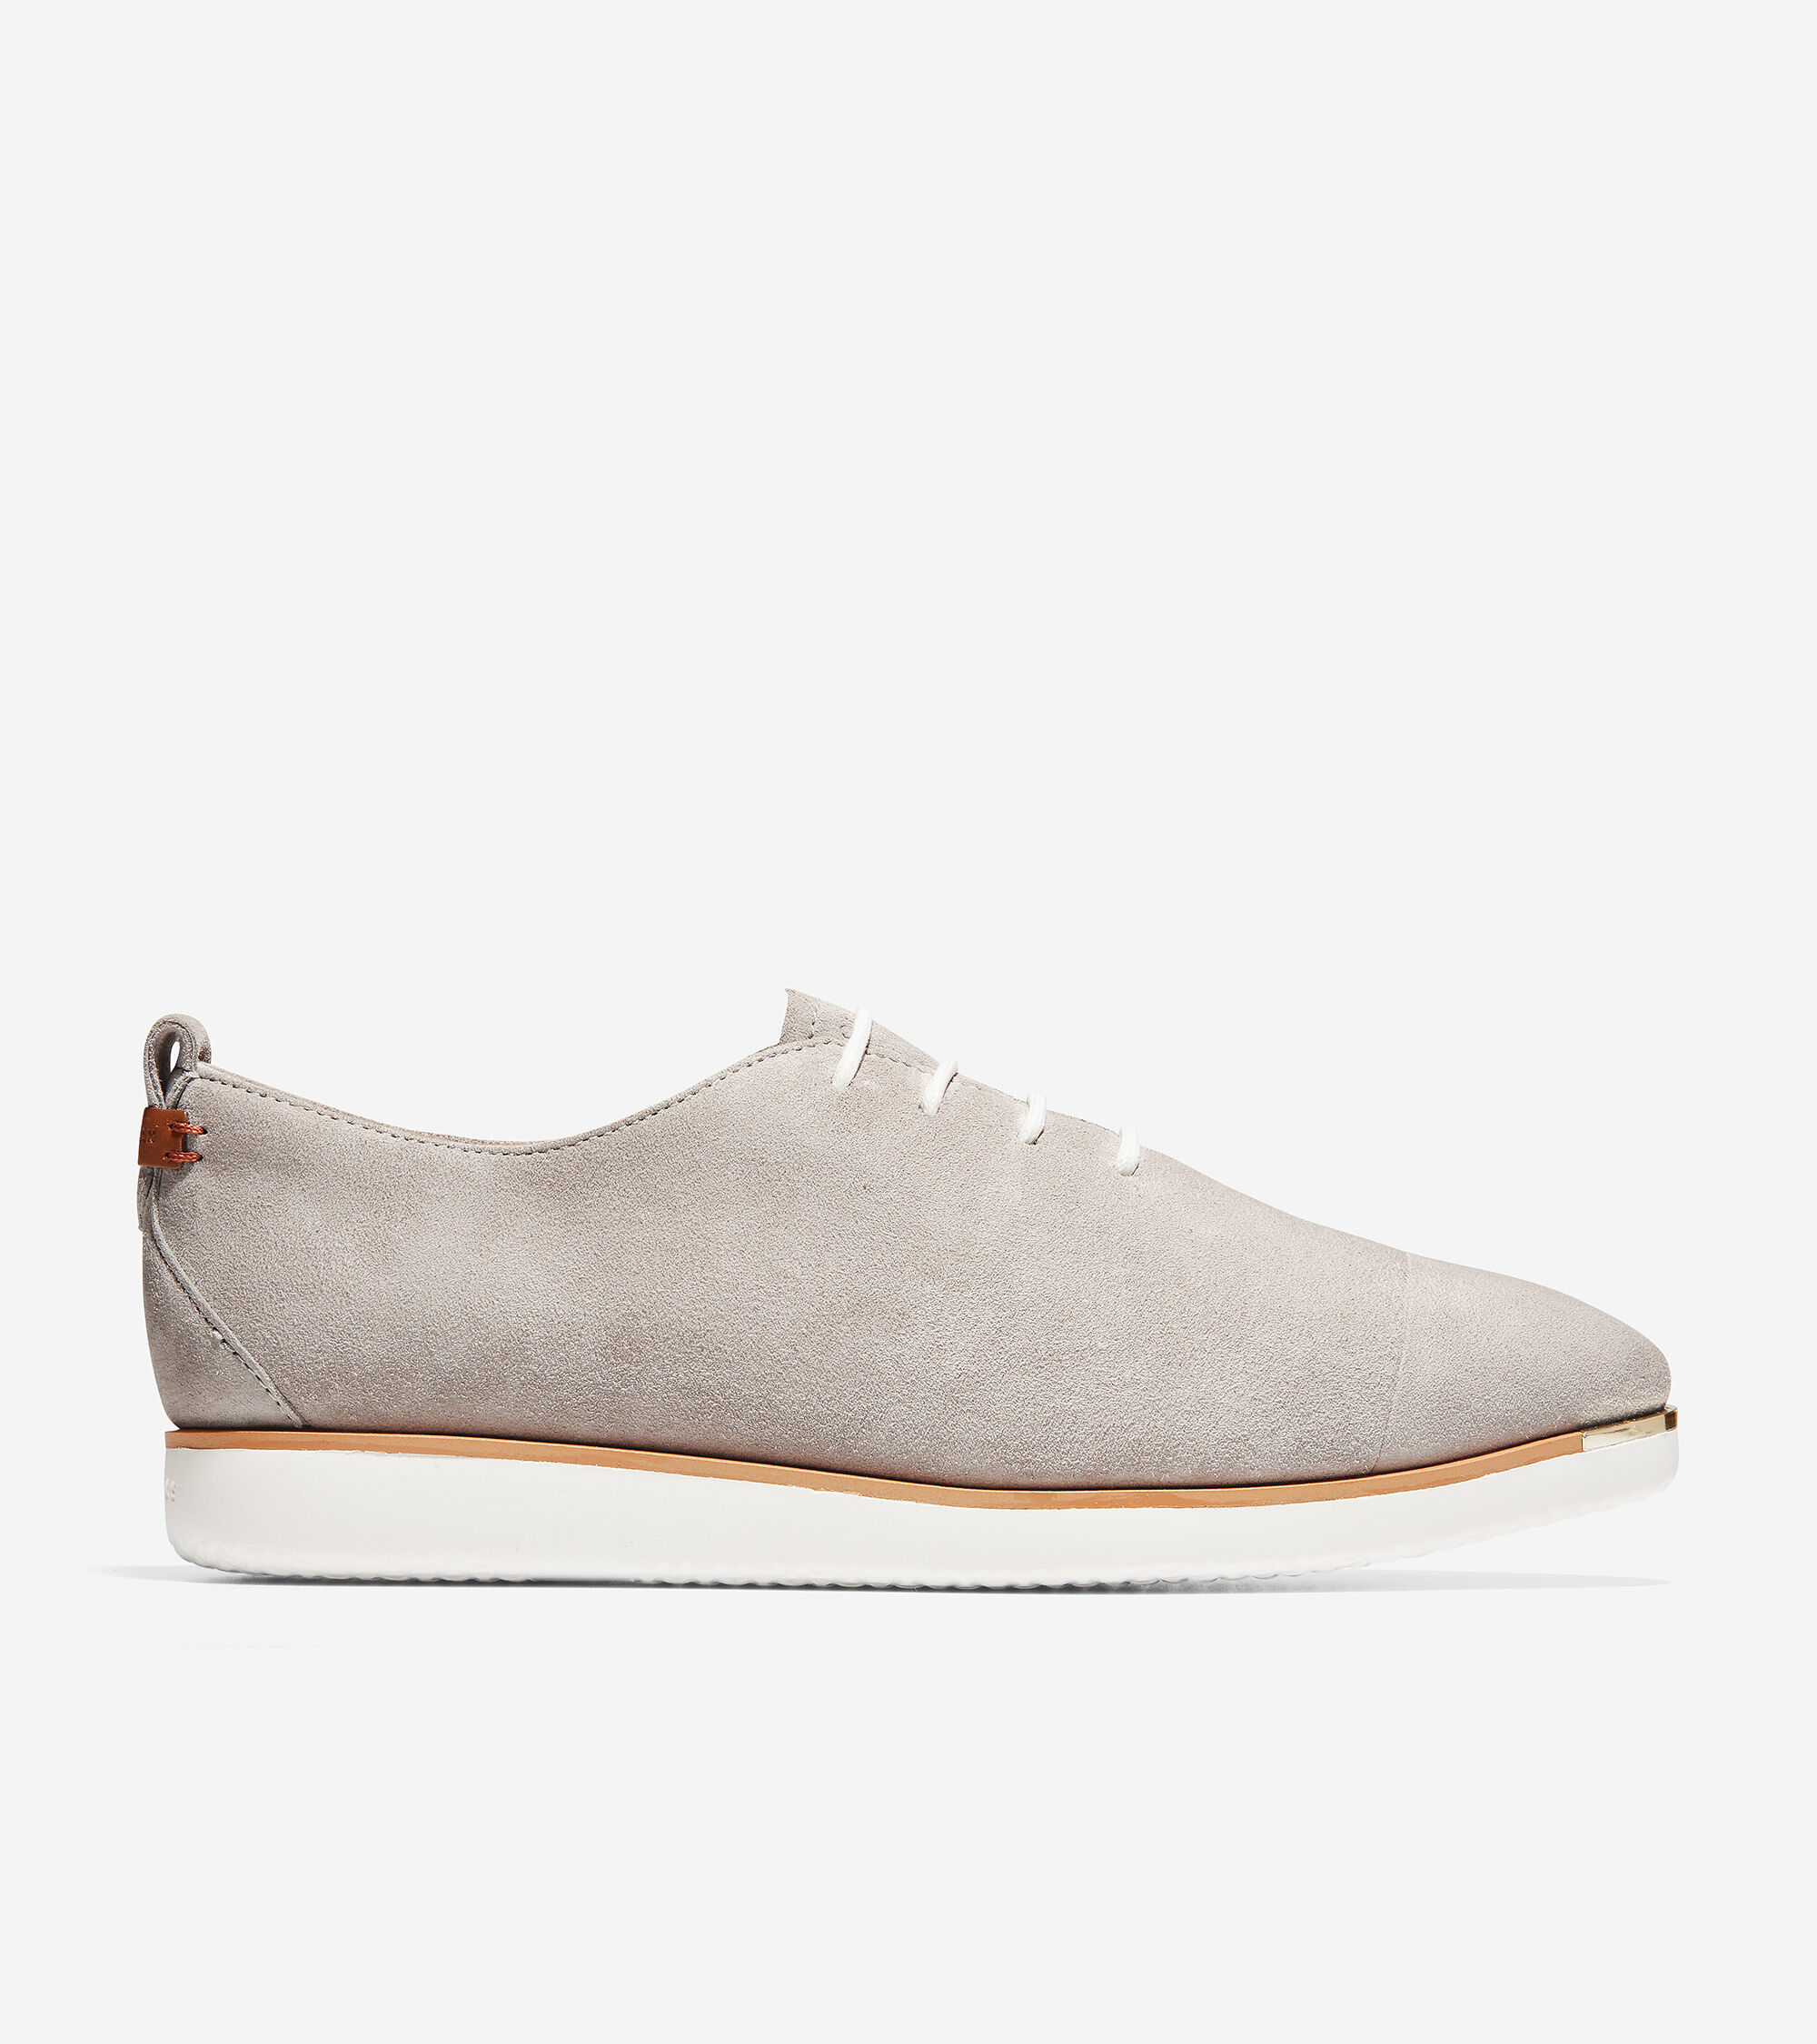 Grand Lace Ambition Grand Sneaker Ambition Up YI6vfby7g